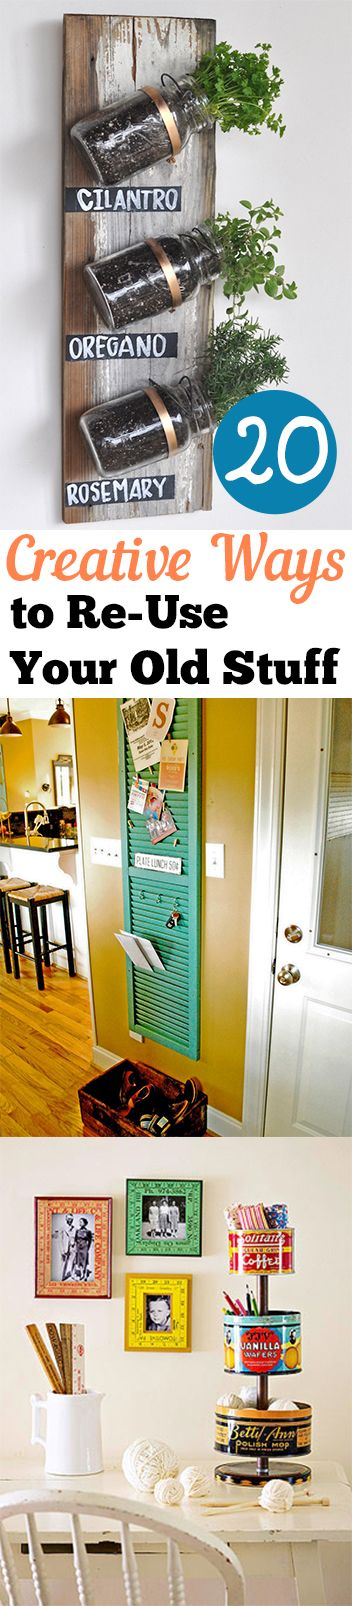 20 Creative Ways to Re-Use Your Old Stuff http://calgary.isgreen.ca/category/food-and-drink/smoothies/